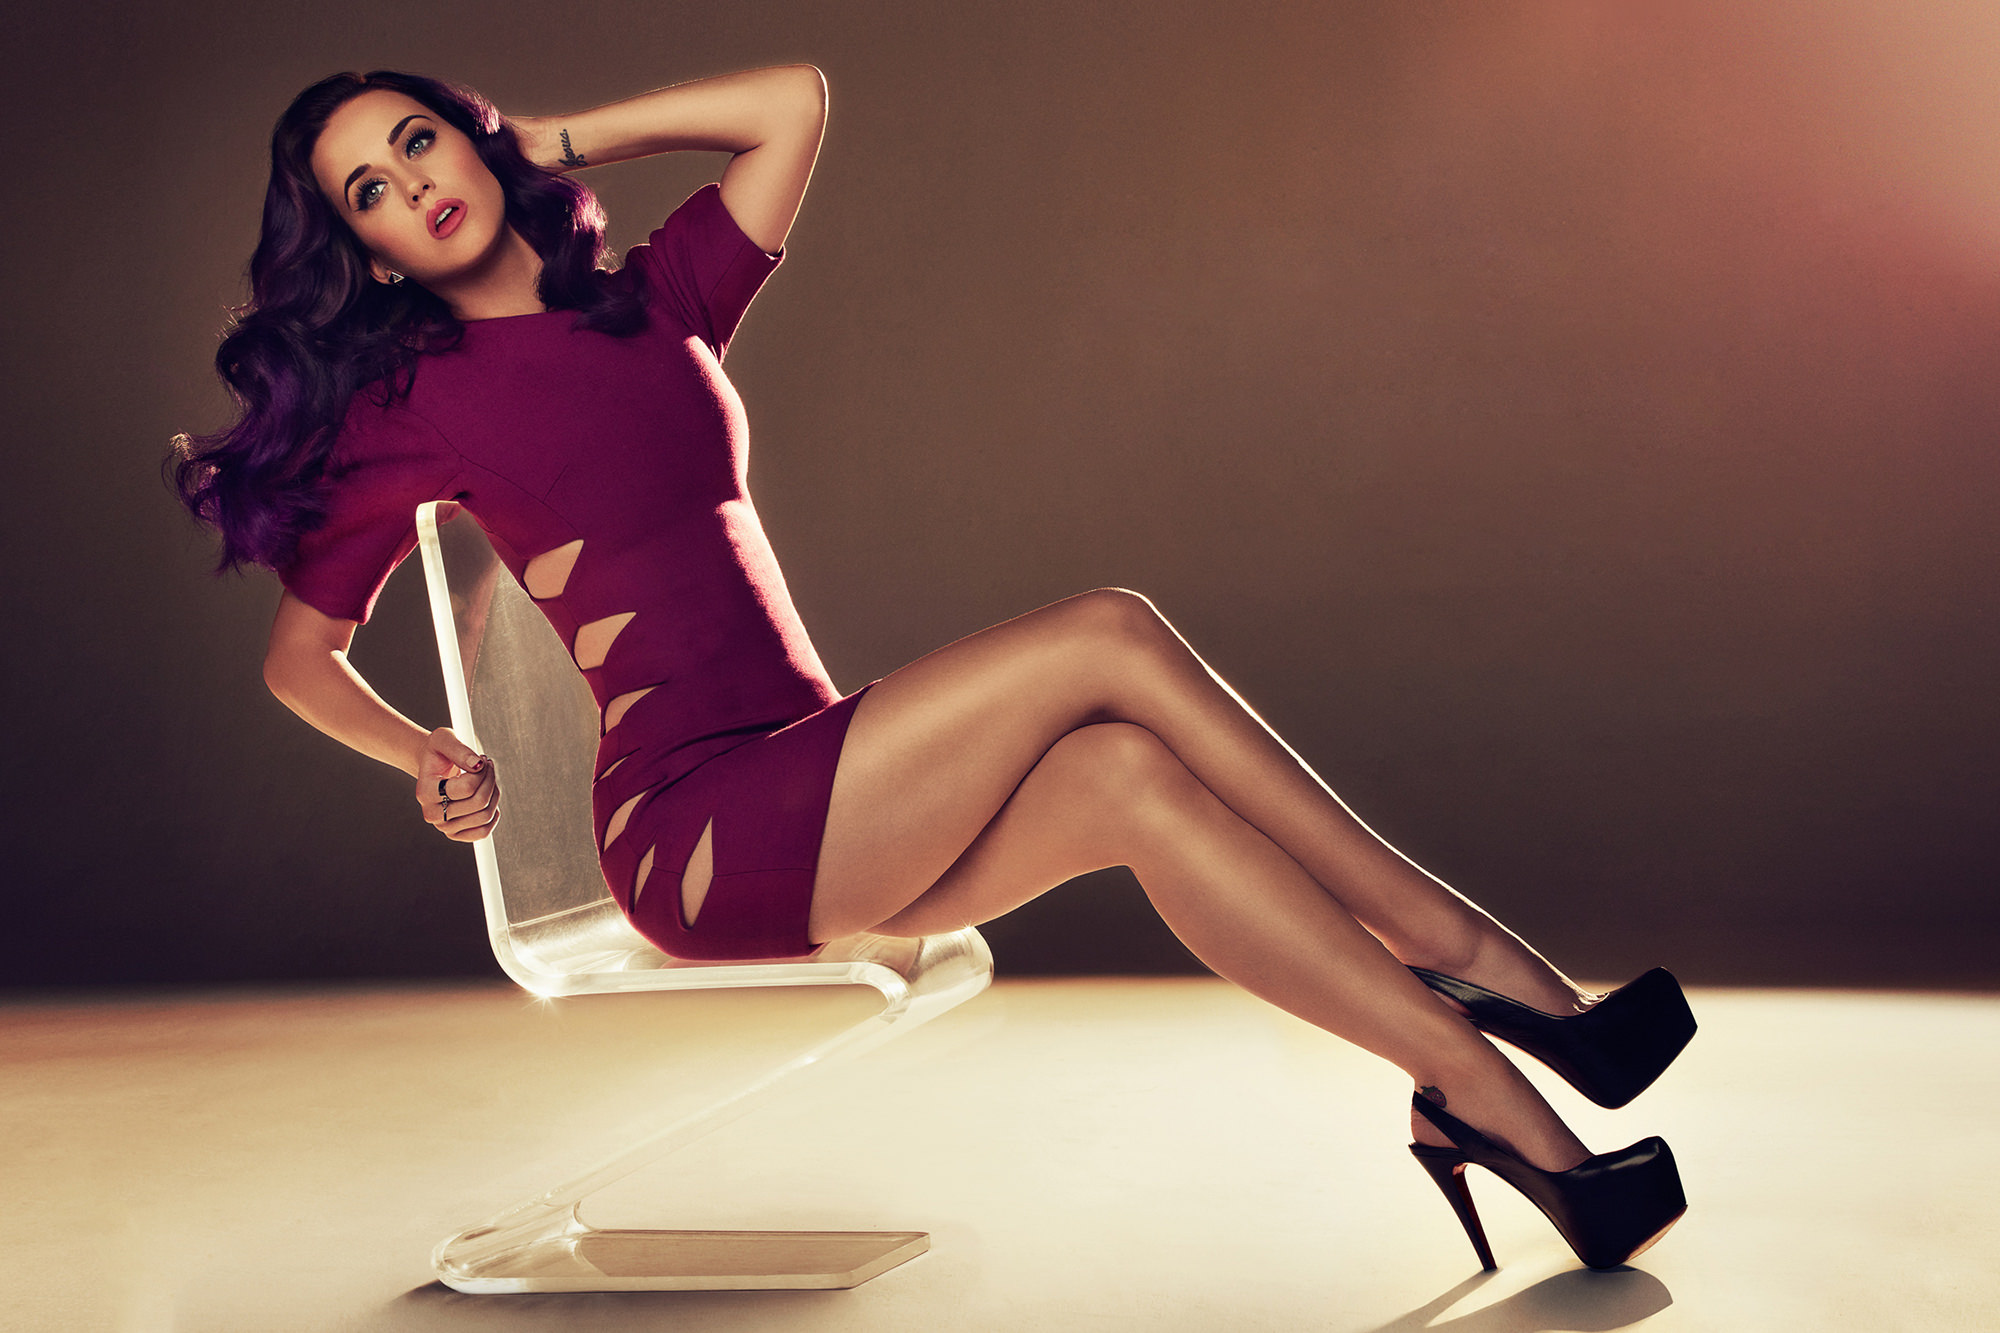 Katy Perry Fashion Wallpaper